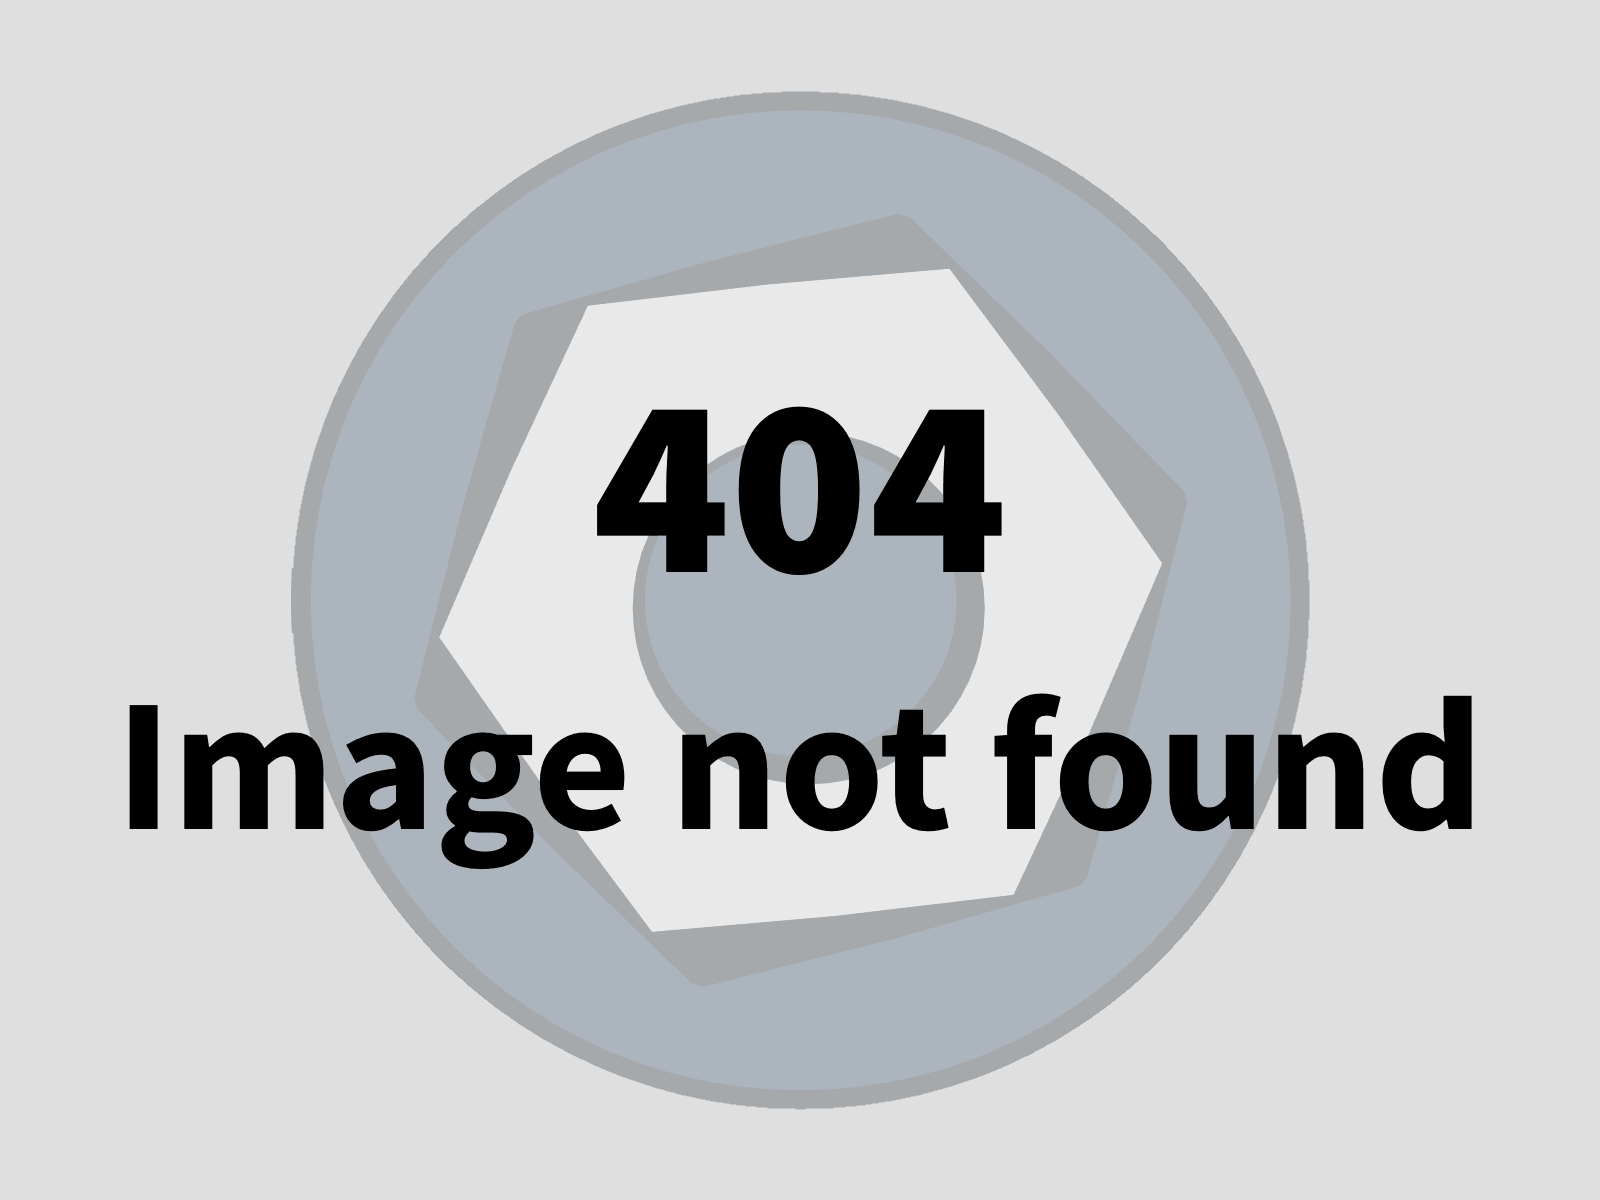 Receive the W2H2 rapport for free